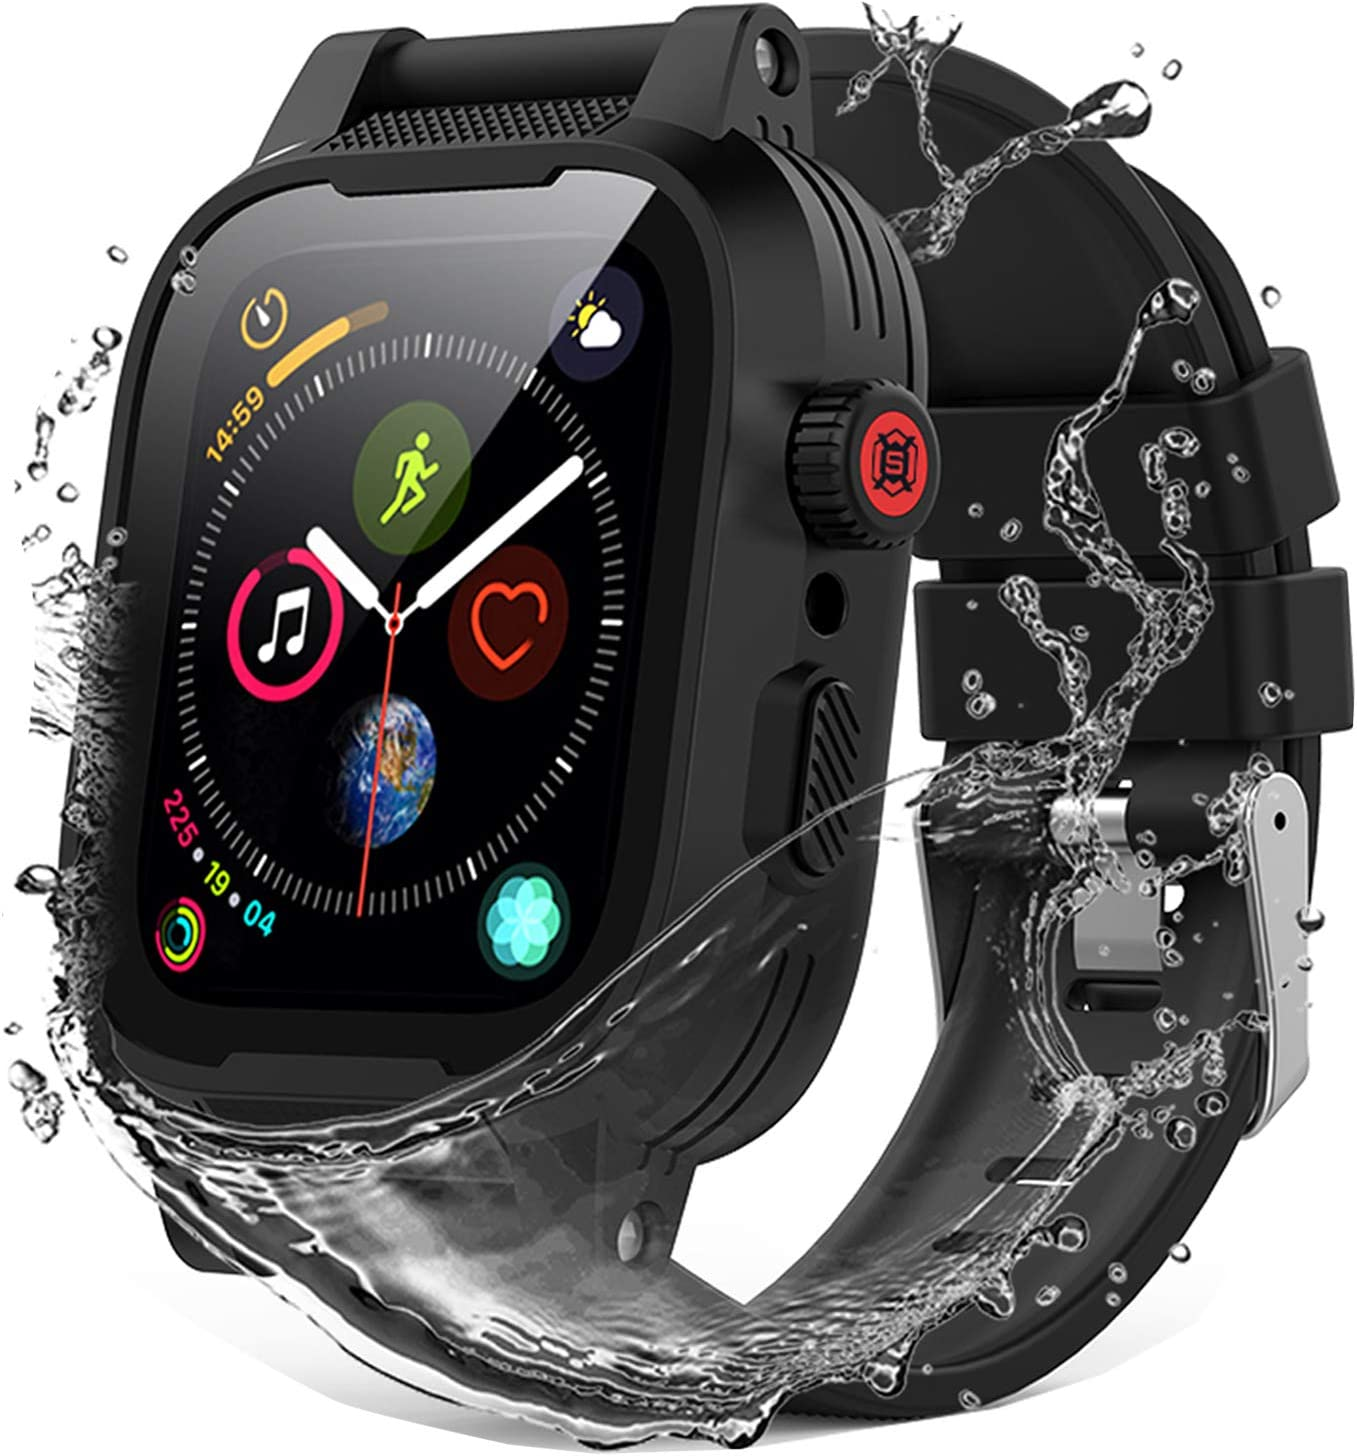 Apple Watch Waterproof Case, Waterproof Case for 42mm Apple Watch Series 2&3, Apple Watch Shockproof and Dust-Proof Case, Built-in Screen Protector with 2 Solt Watch Band